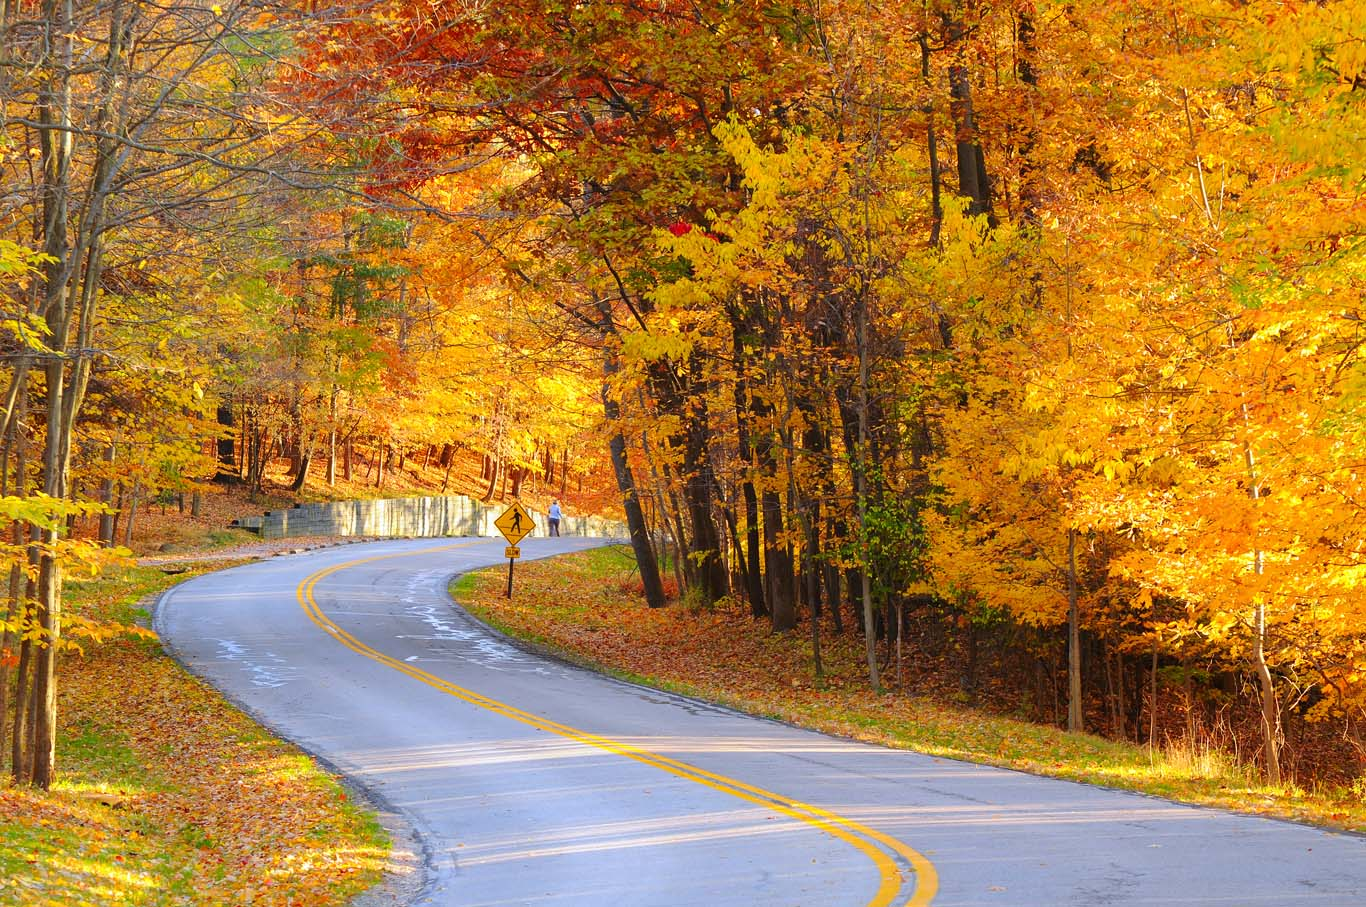 A curving autumn road with a hiker in the far distance